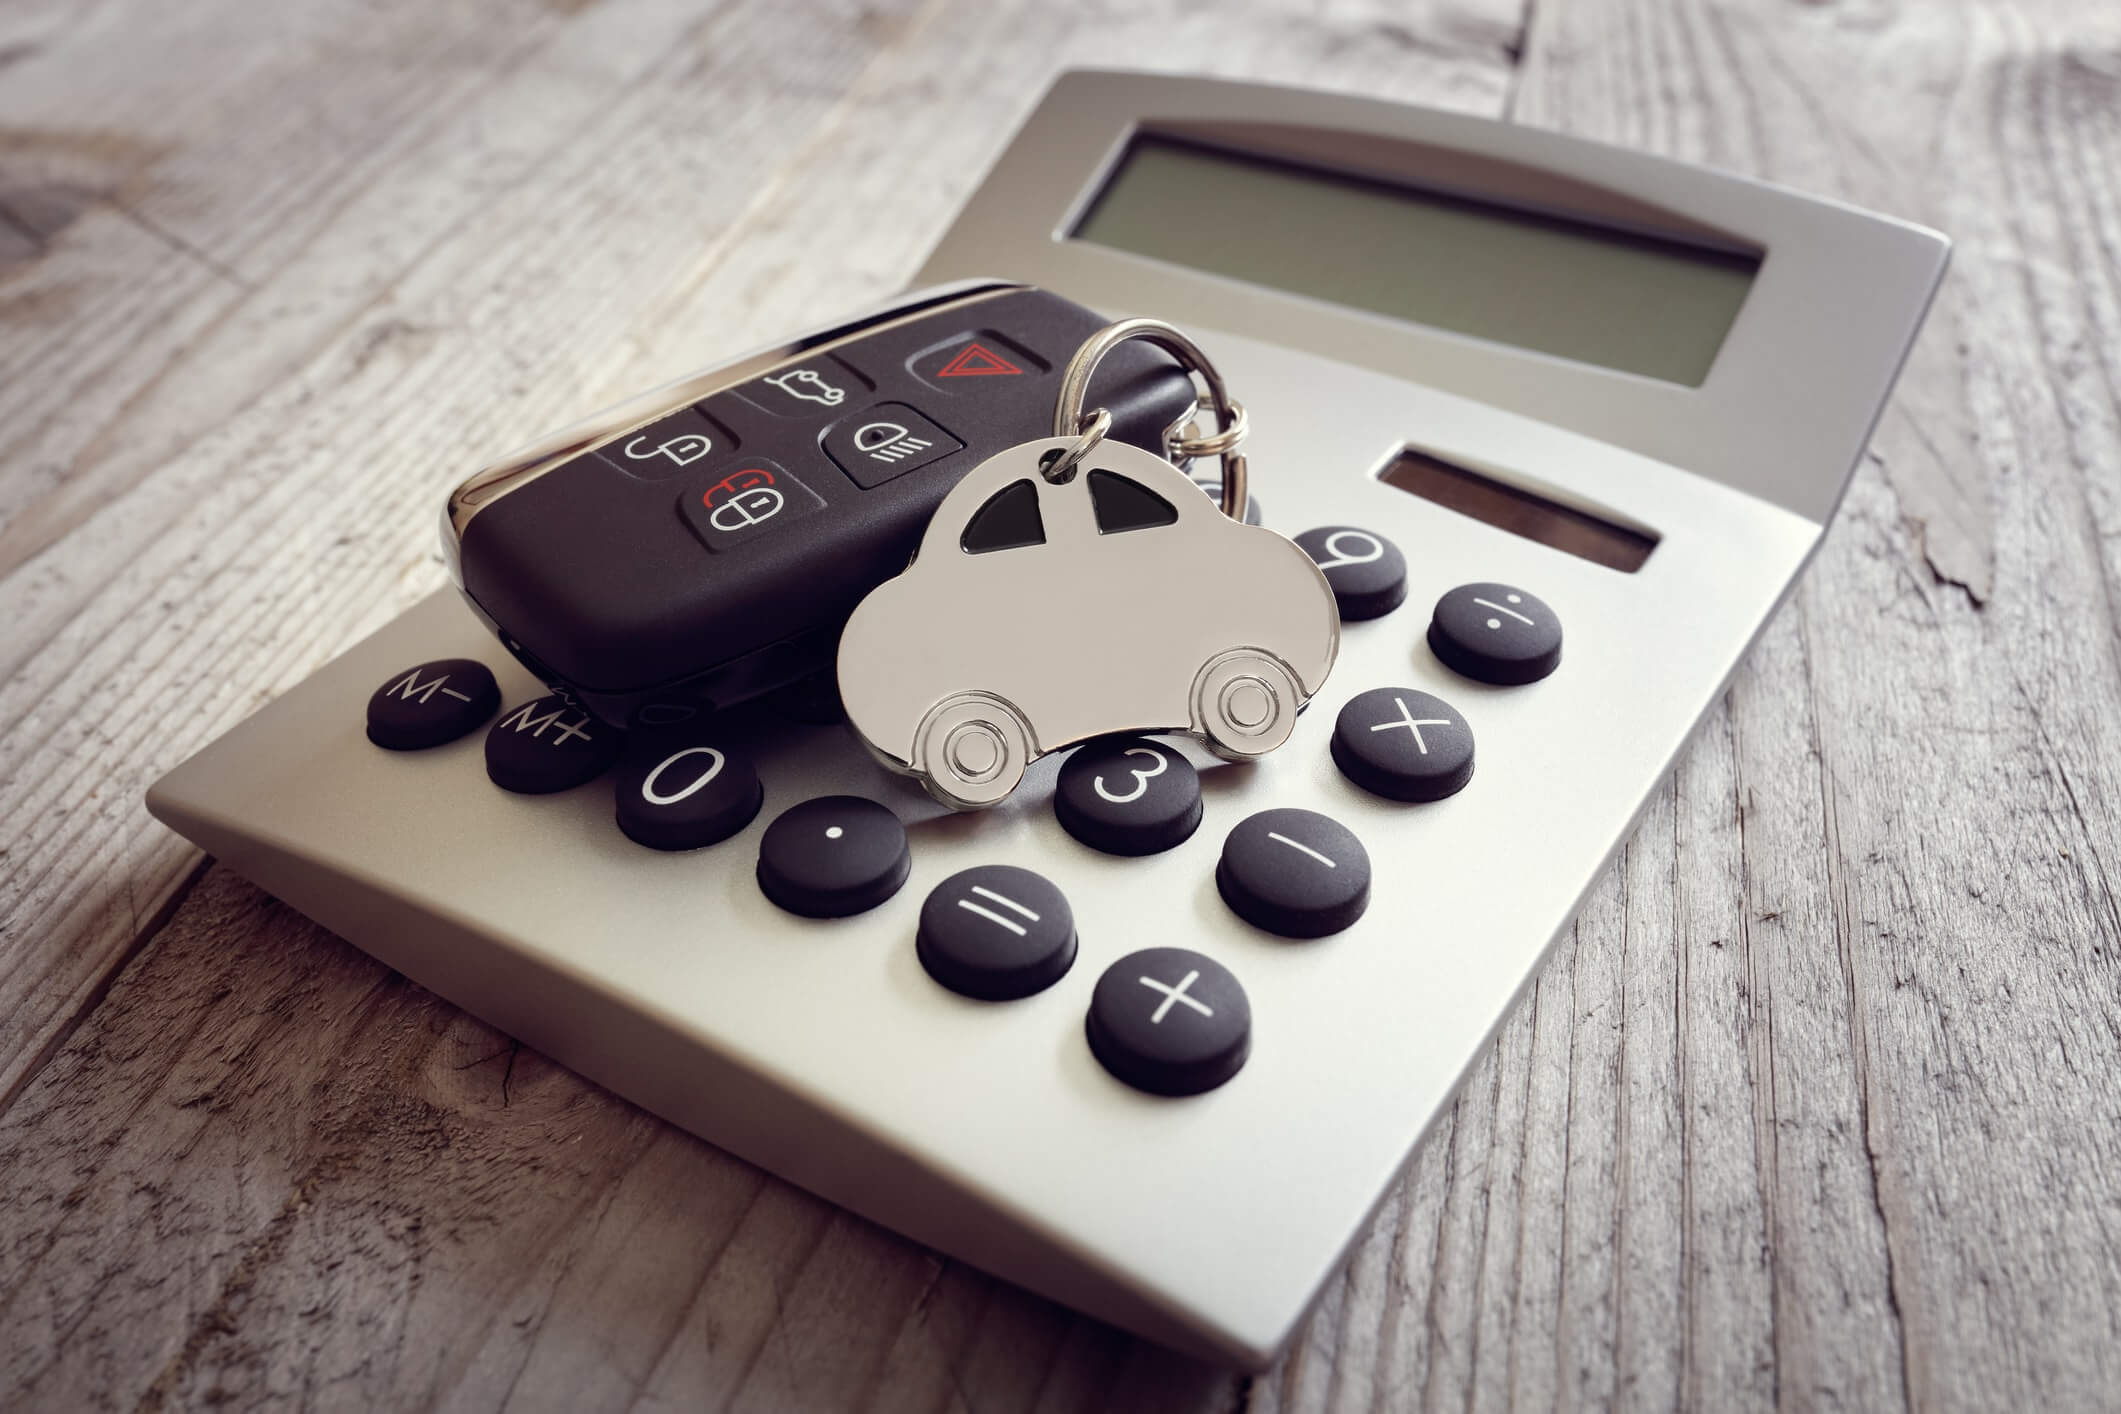 photo of car keys on top of a calculator